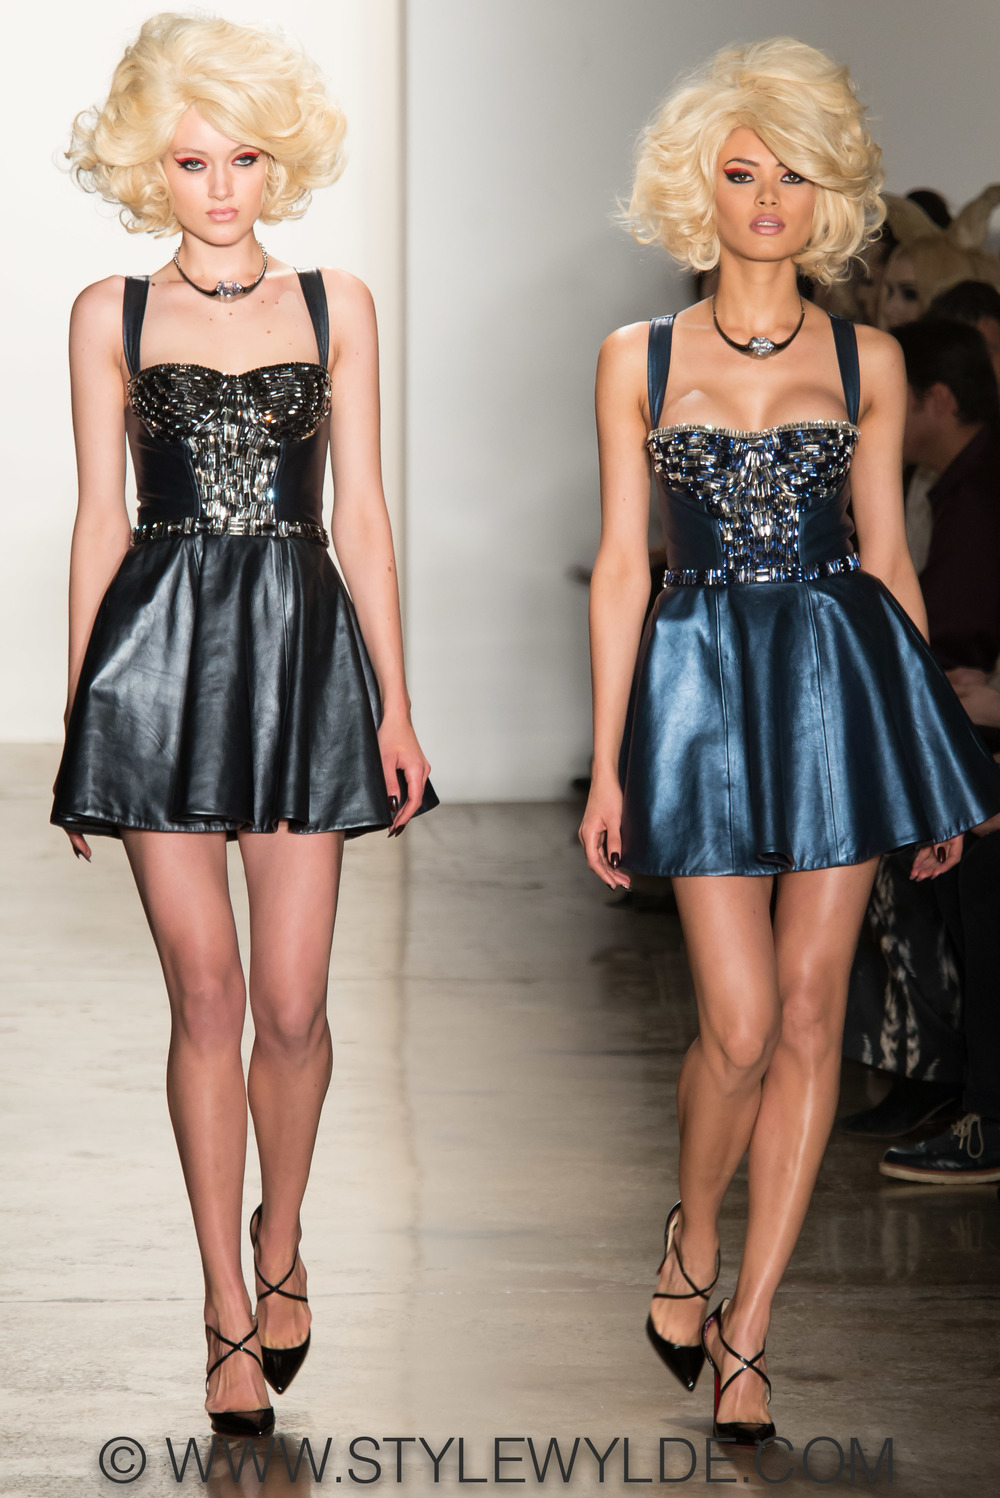 stylewylde_The_Blonds_FW_2013-2.jpg